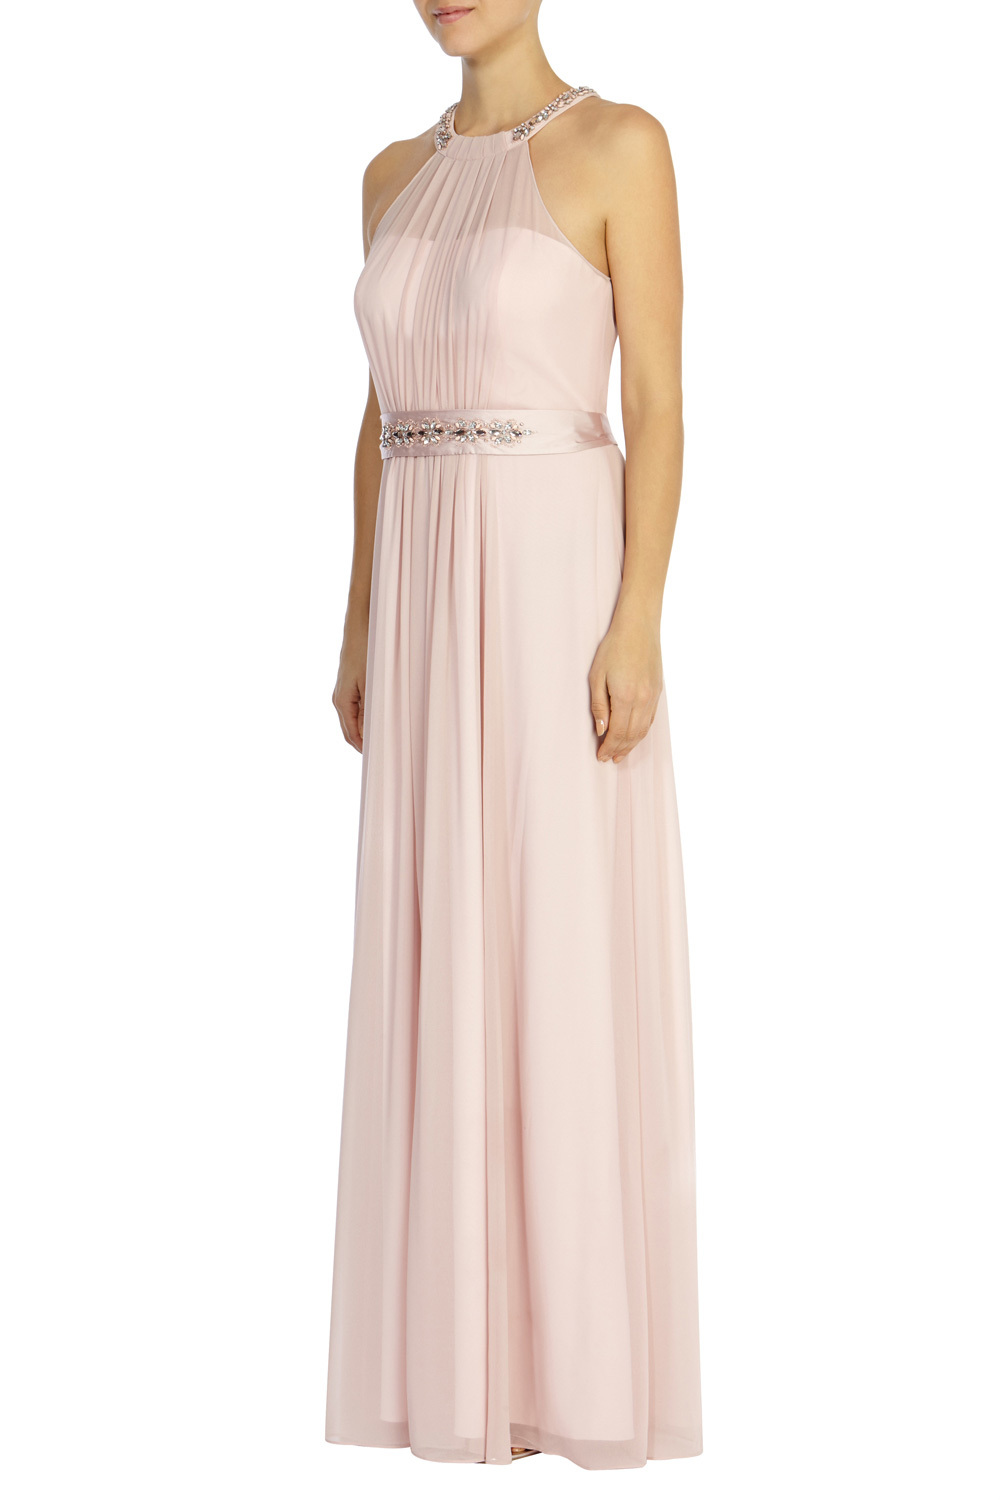 Juliette Maxi Dress - style: ballgown; pattern: plain; sleeve style: sleeveless; waist detail: belted waist/tie at waist/drawstring; predominant colour: blush; occasions: evening; length: floor length; fit: body skimming; fibres: polyester/polyamide - 100%; sleeve length: sleeveless; texture group: sheer fabrics/chiffon/organza etc.; pattern type: fabric; embellishment: crystals/glass; season: s/s 2016; neckline: high halter neck; wardrobe: event; embellishment location: neck, waist